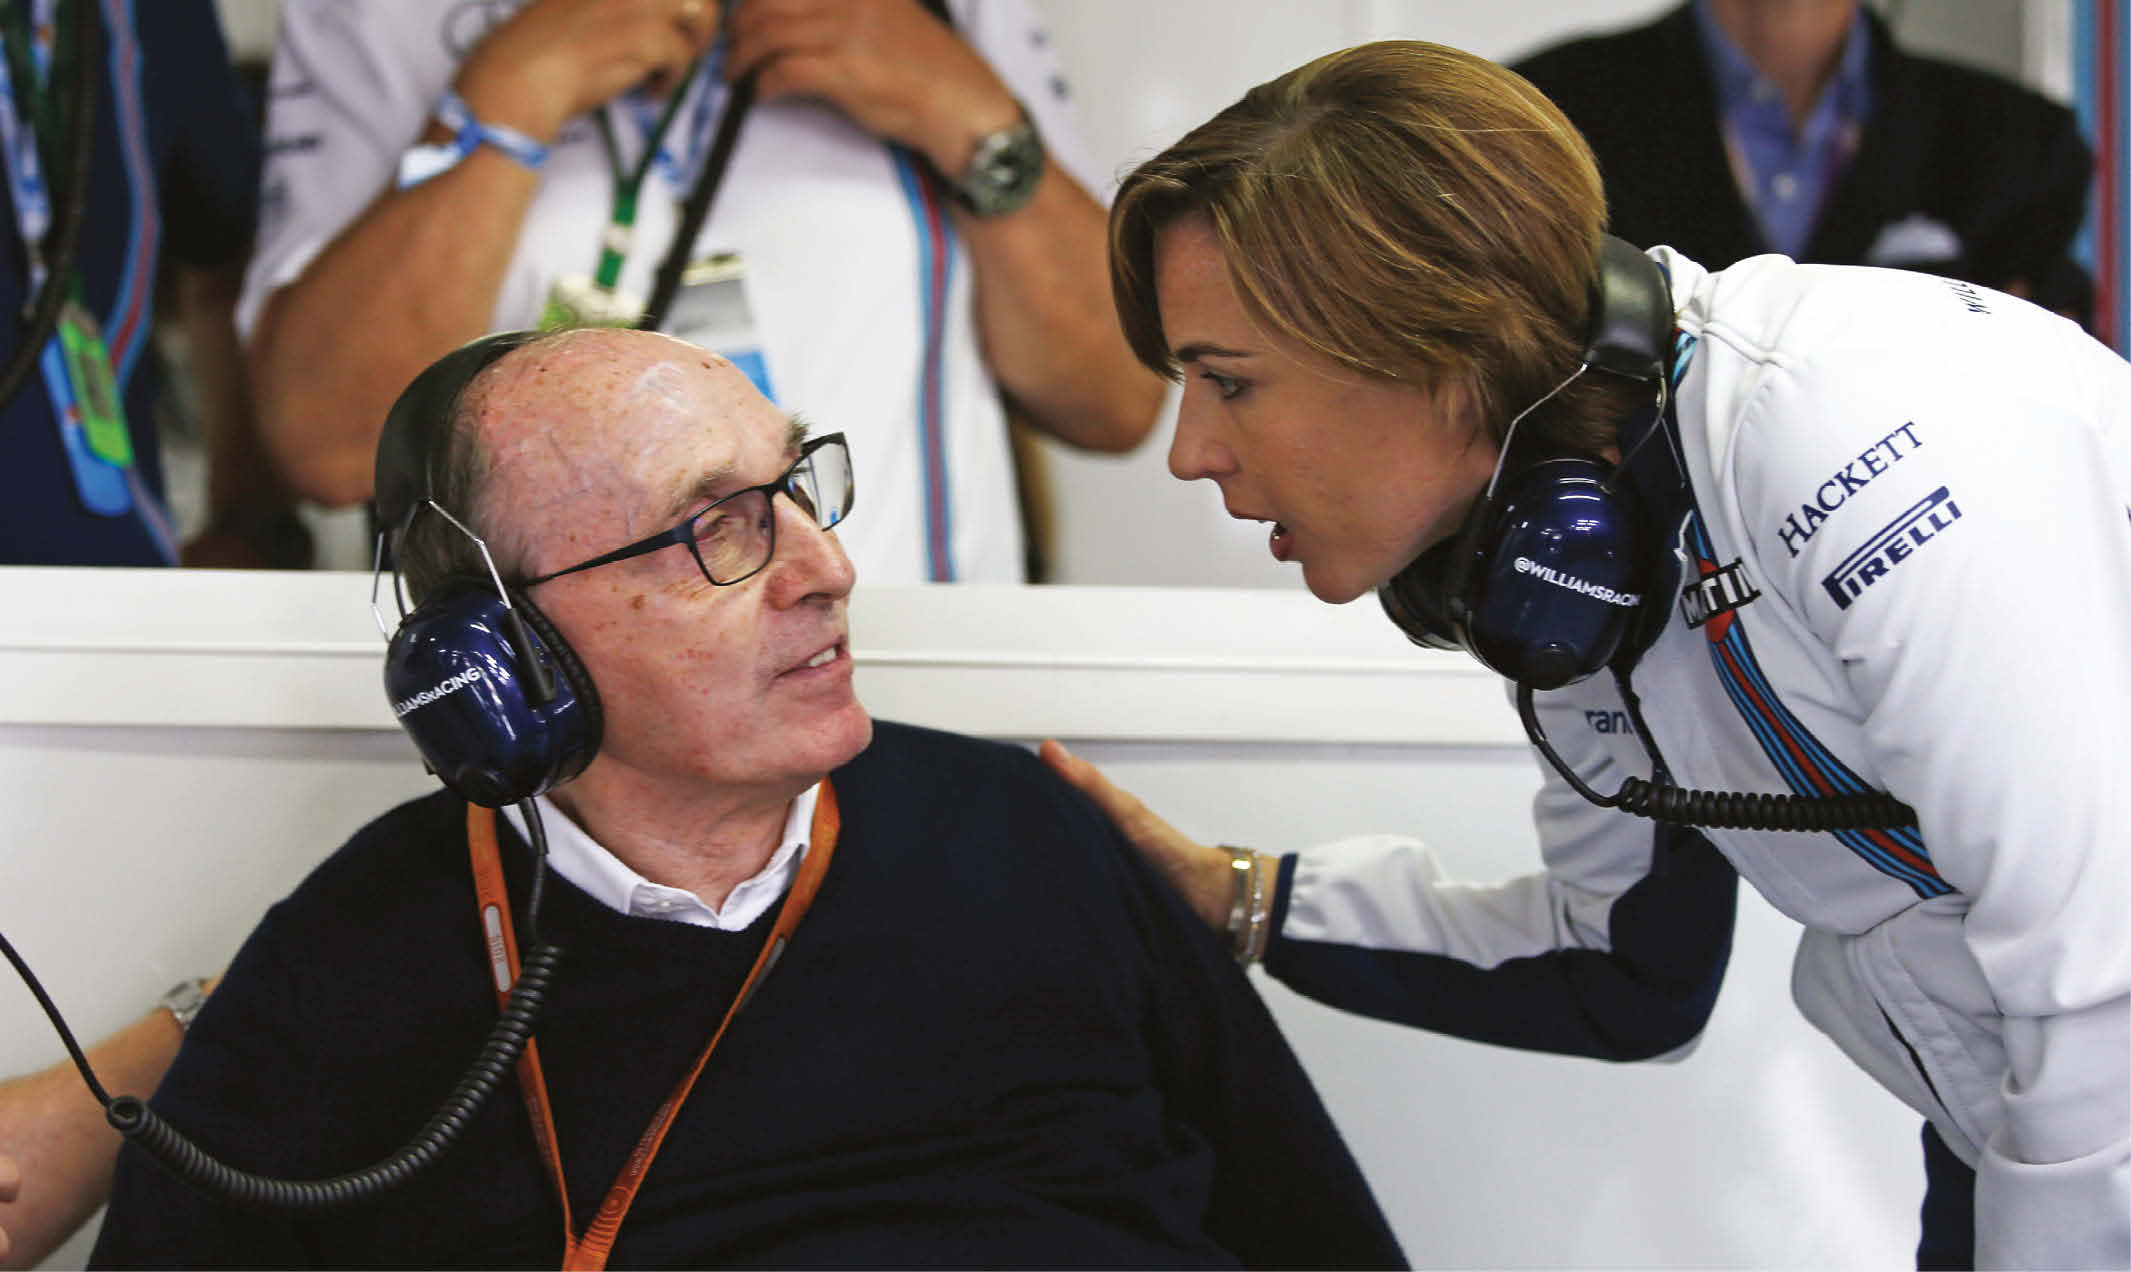 Claire with father Sir Frank, who built up one of F1's powerhouse teams during the 1980s